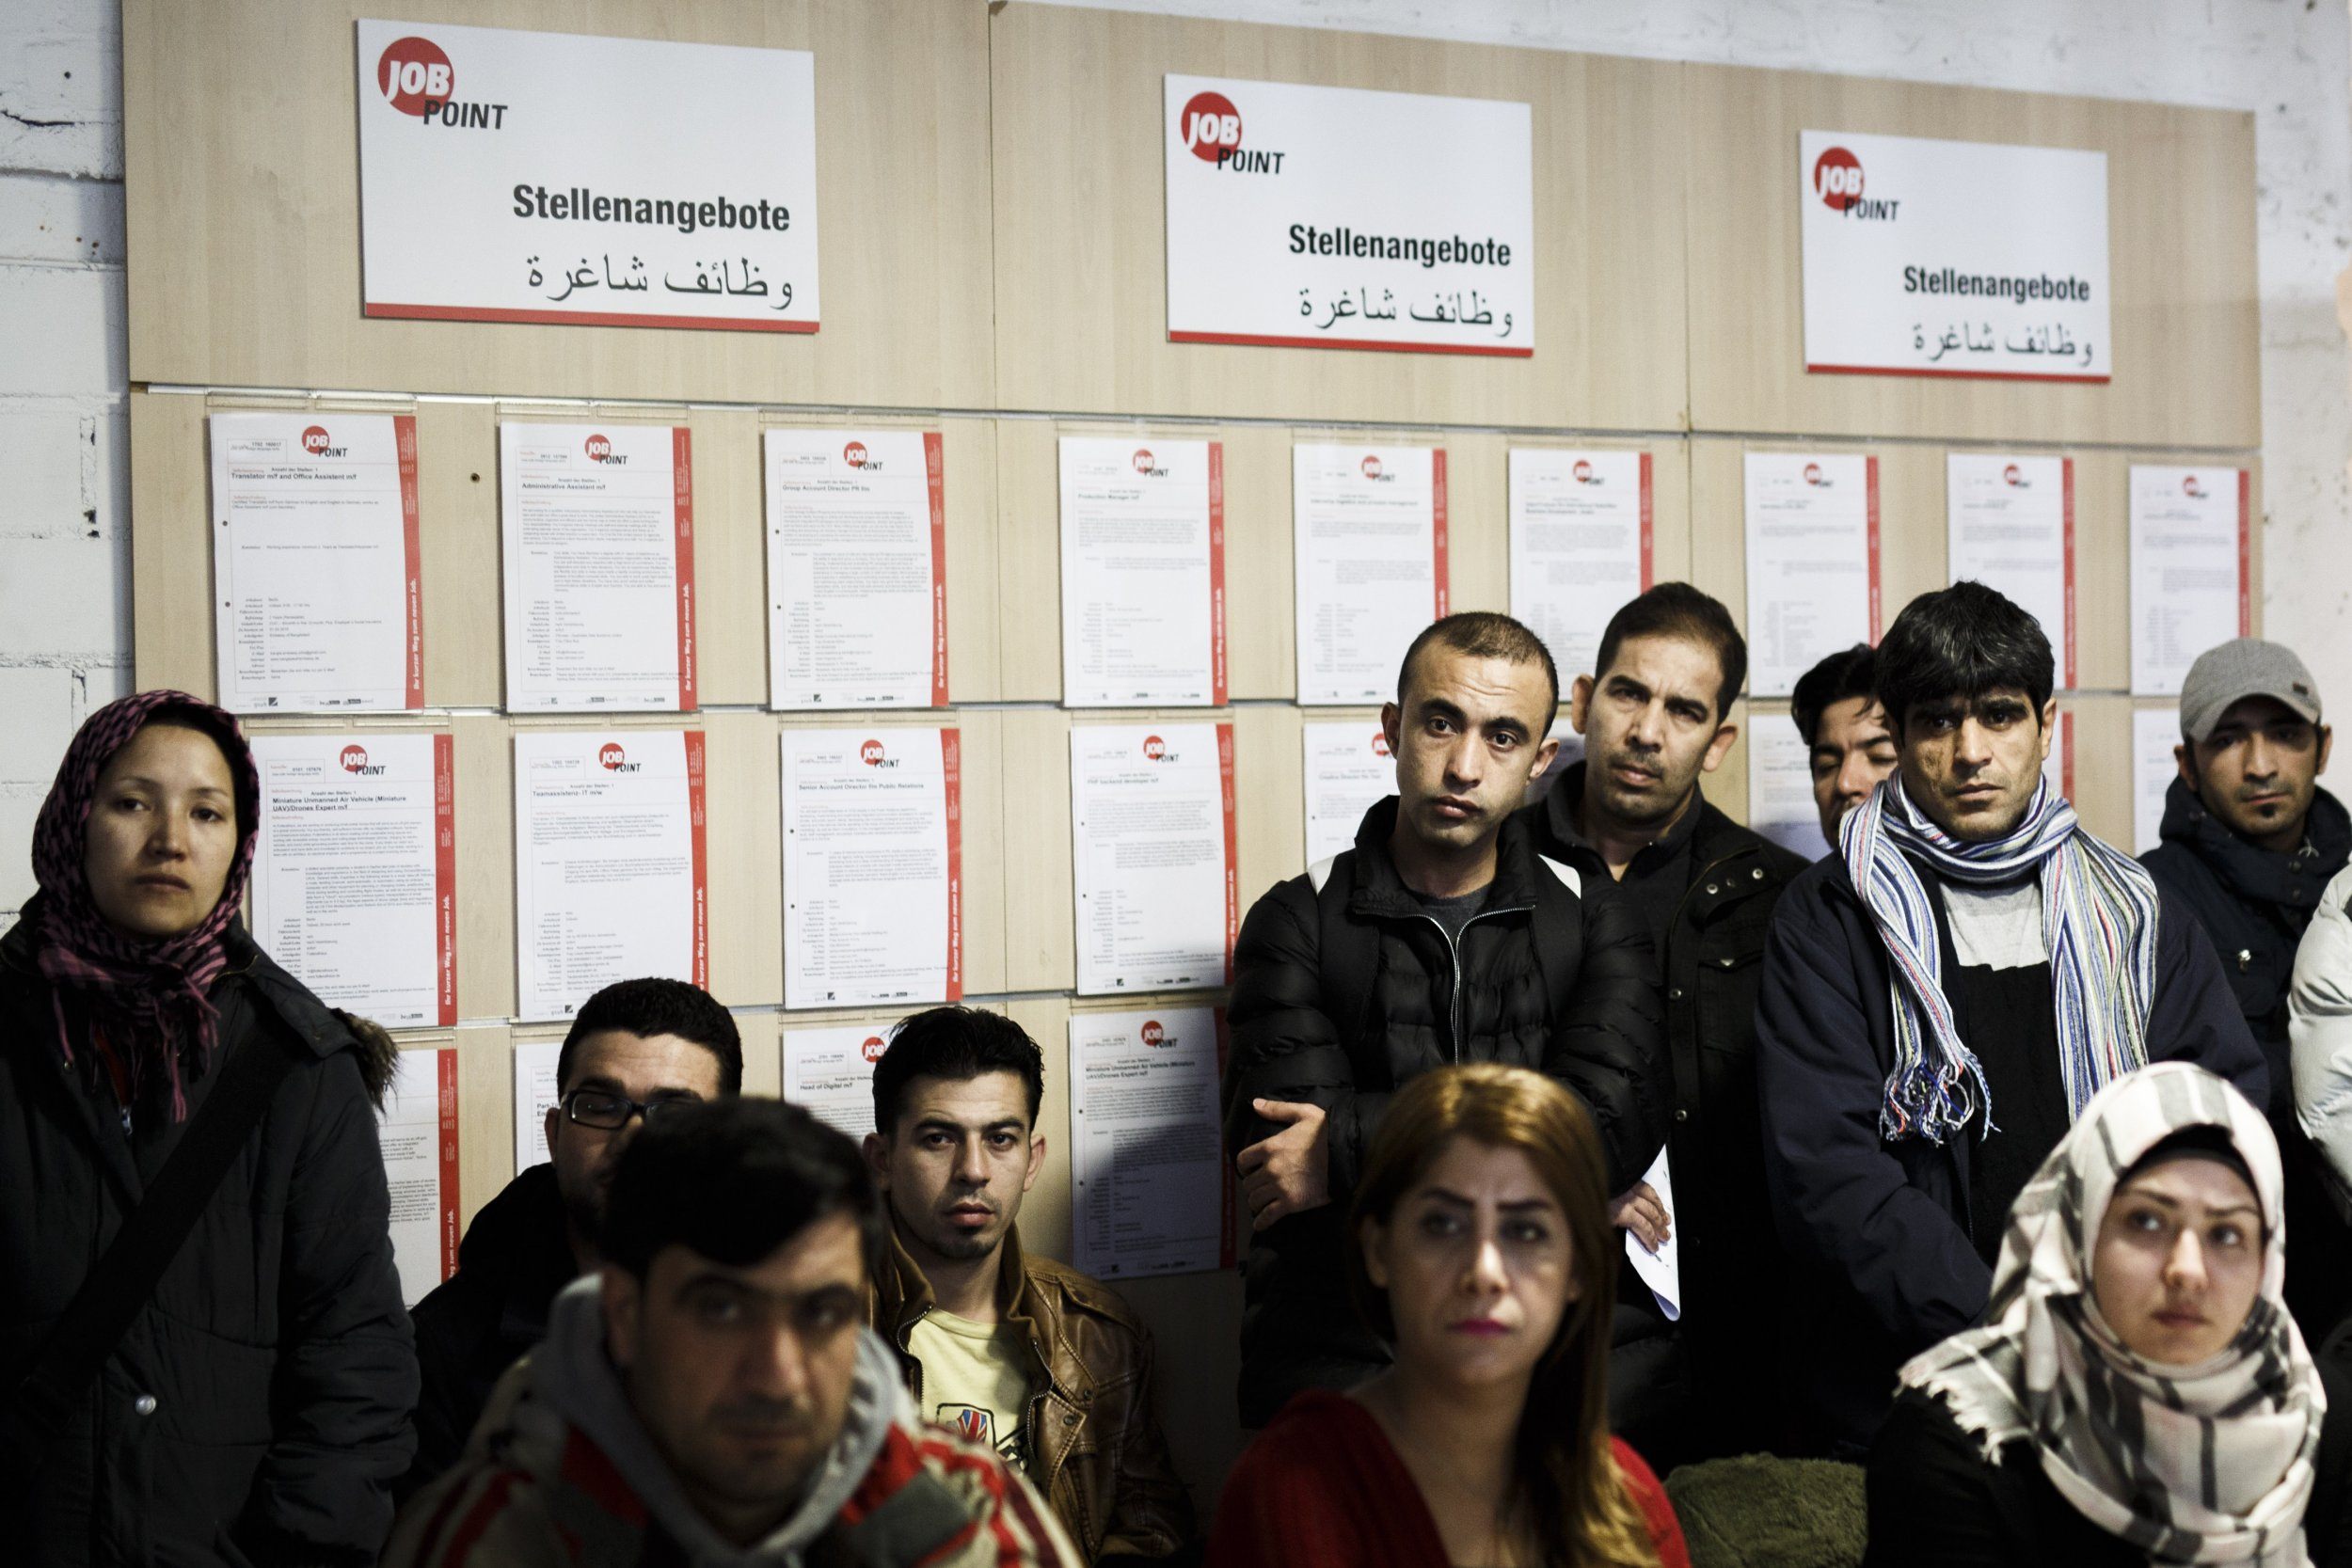 Refugees receiving job counseling